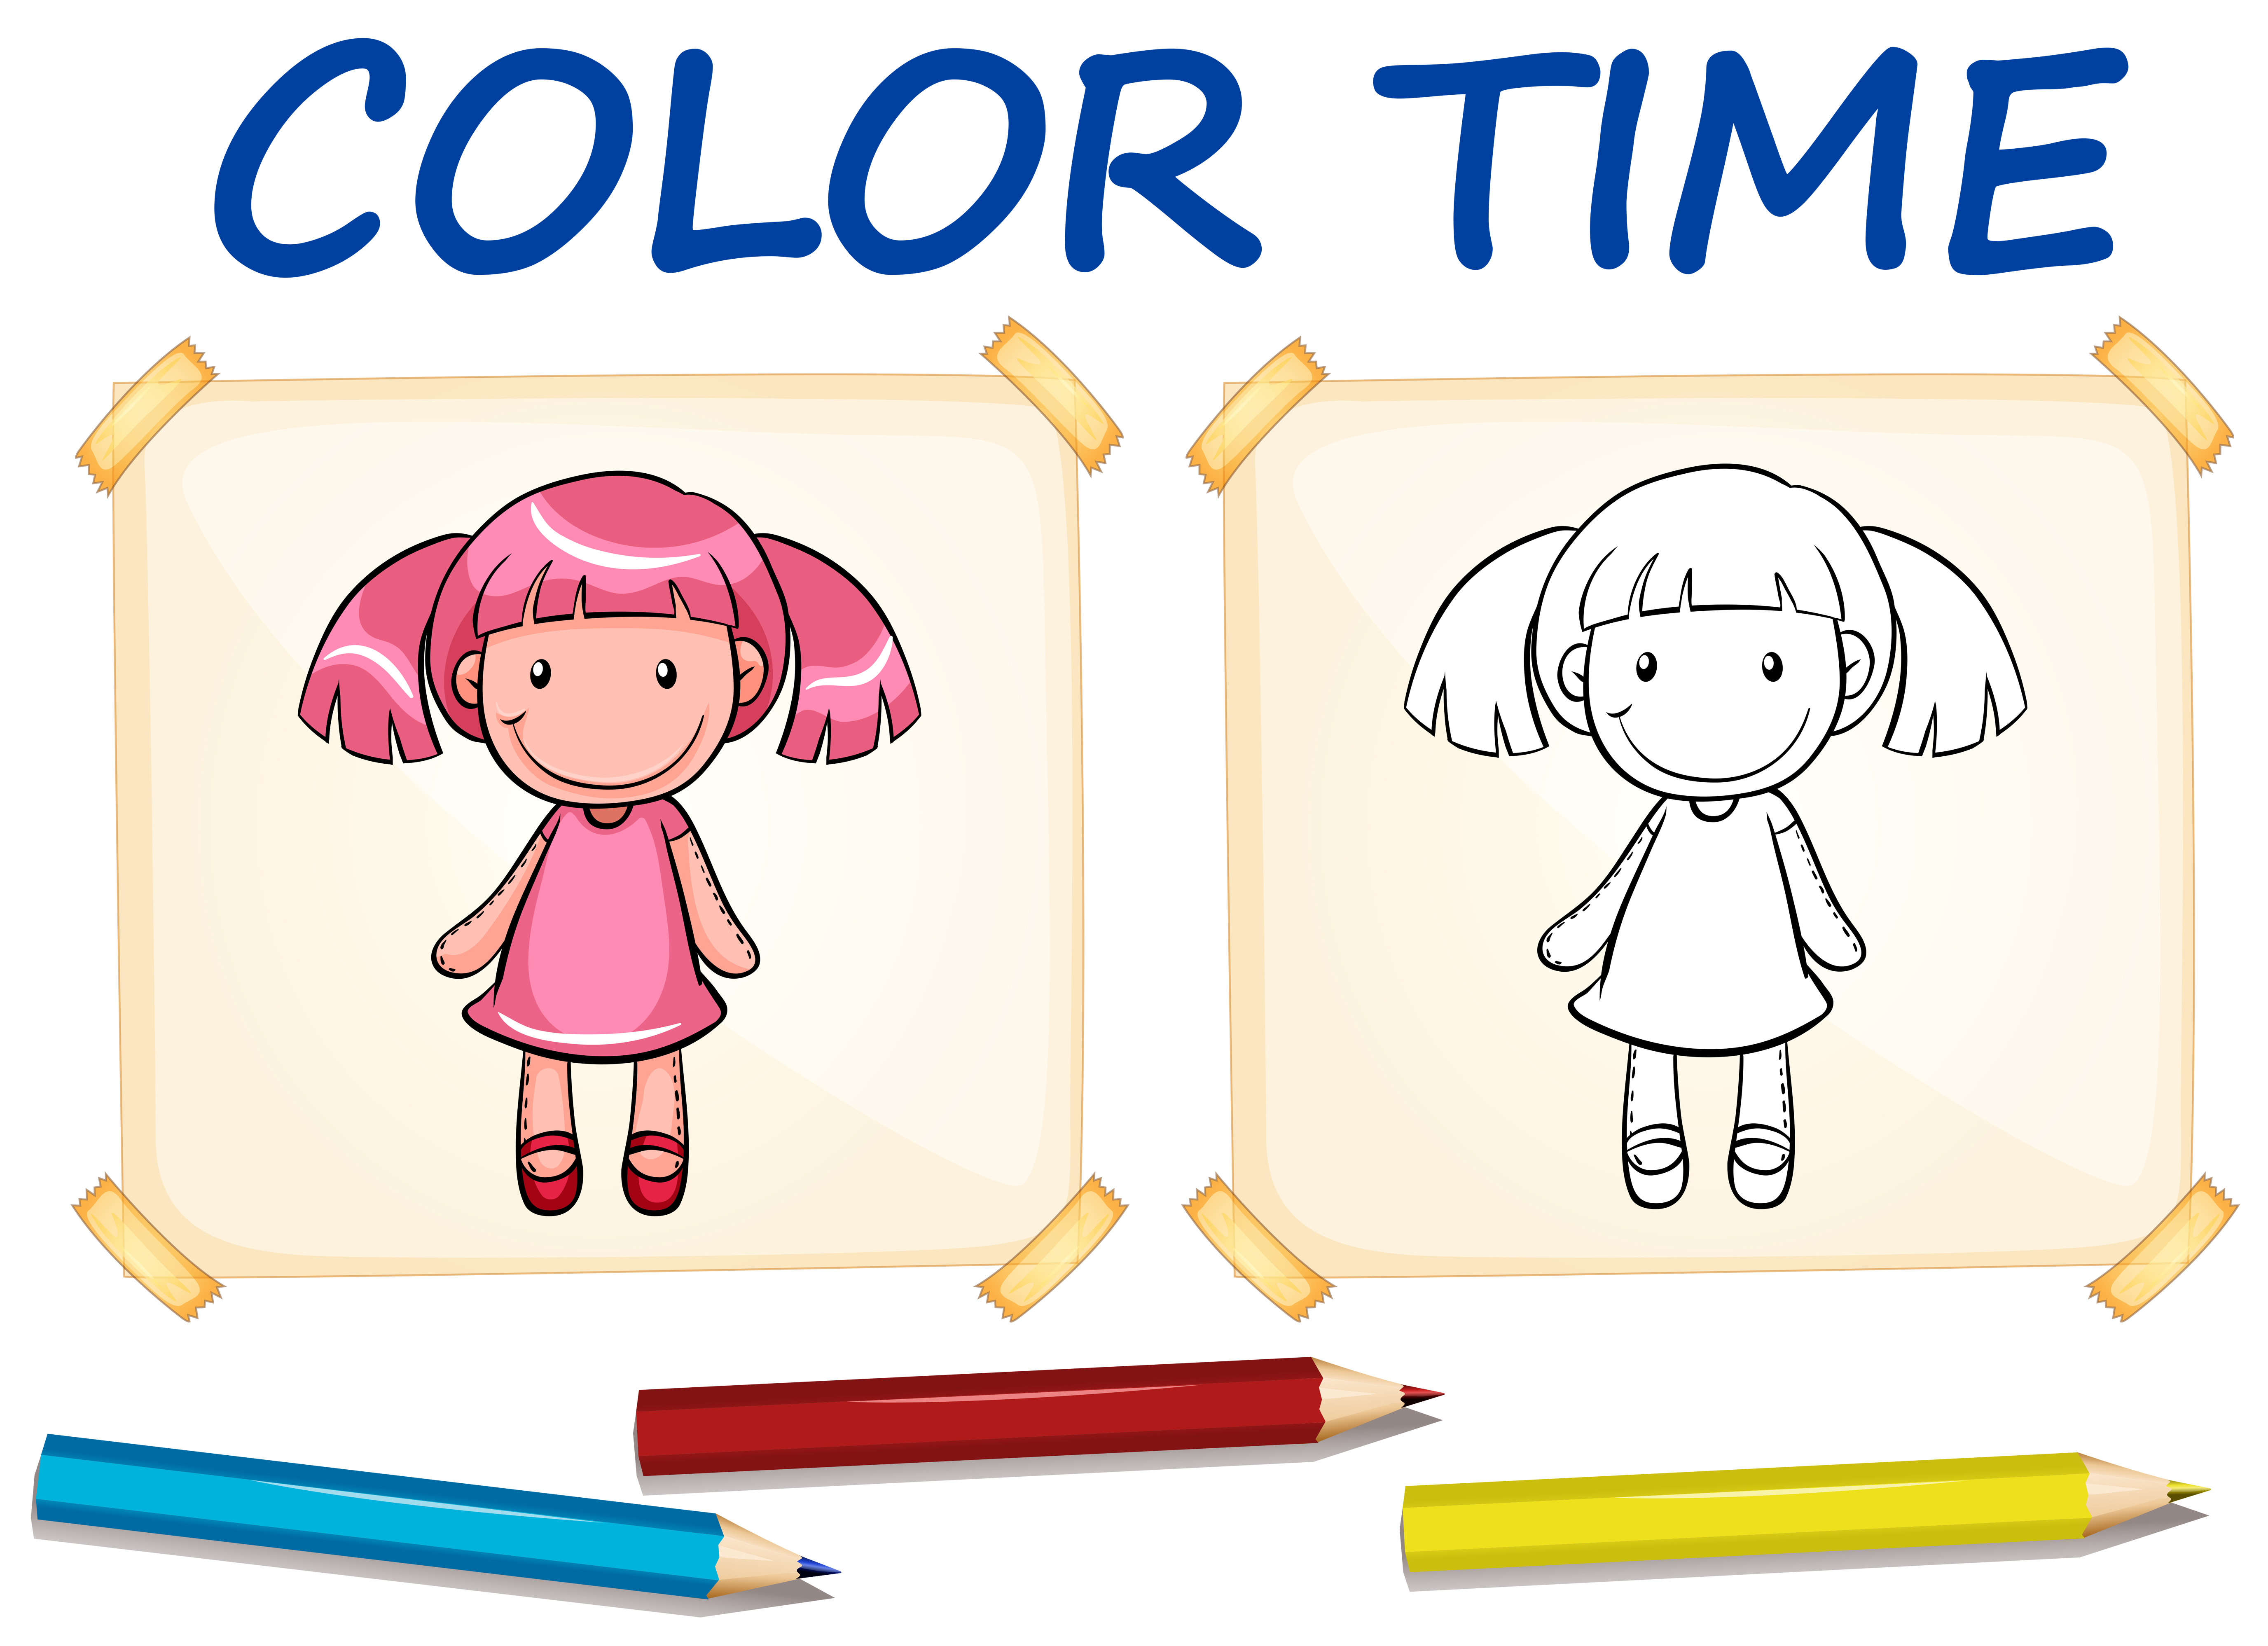 Coloring Template With Cute Doll Download Free Vectors